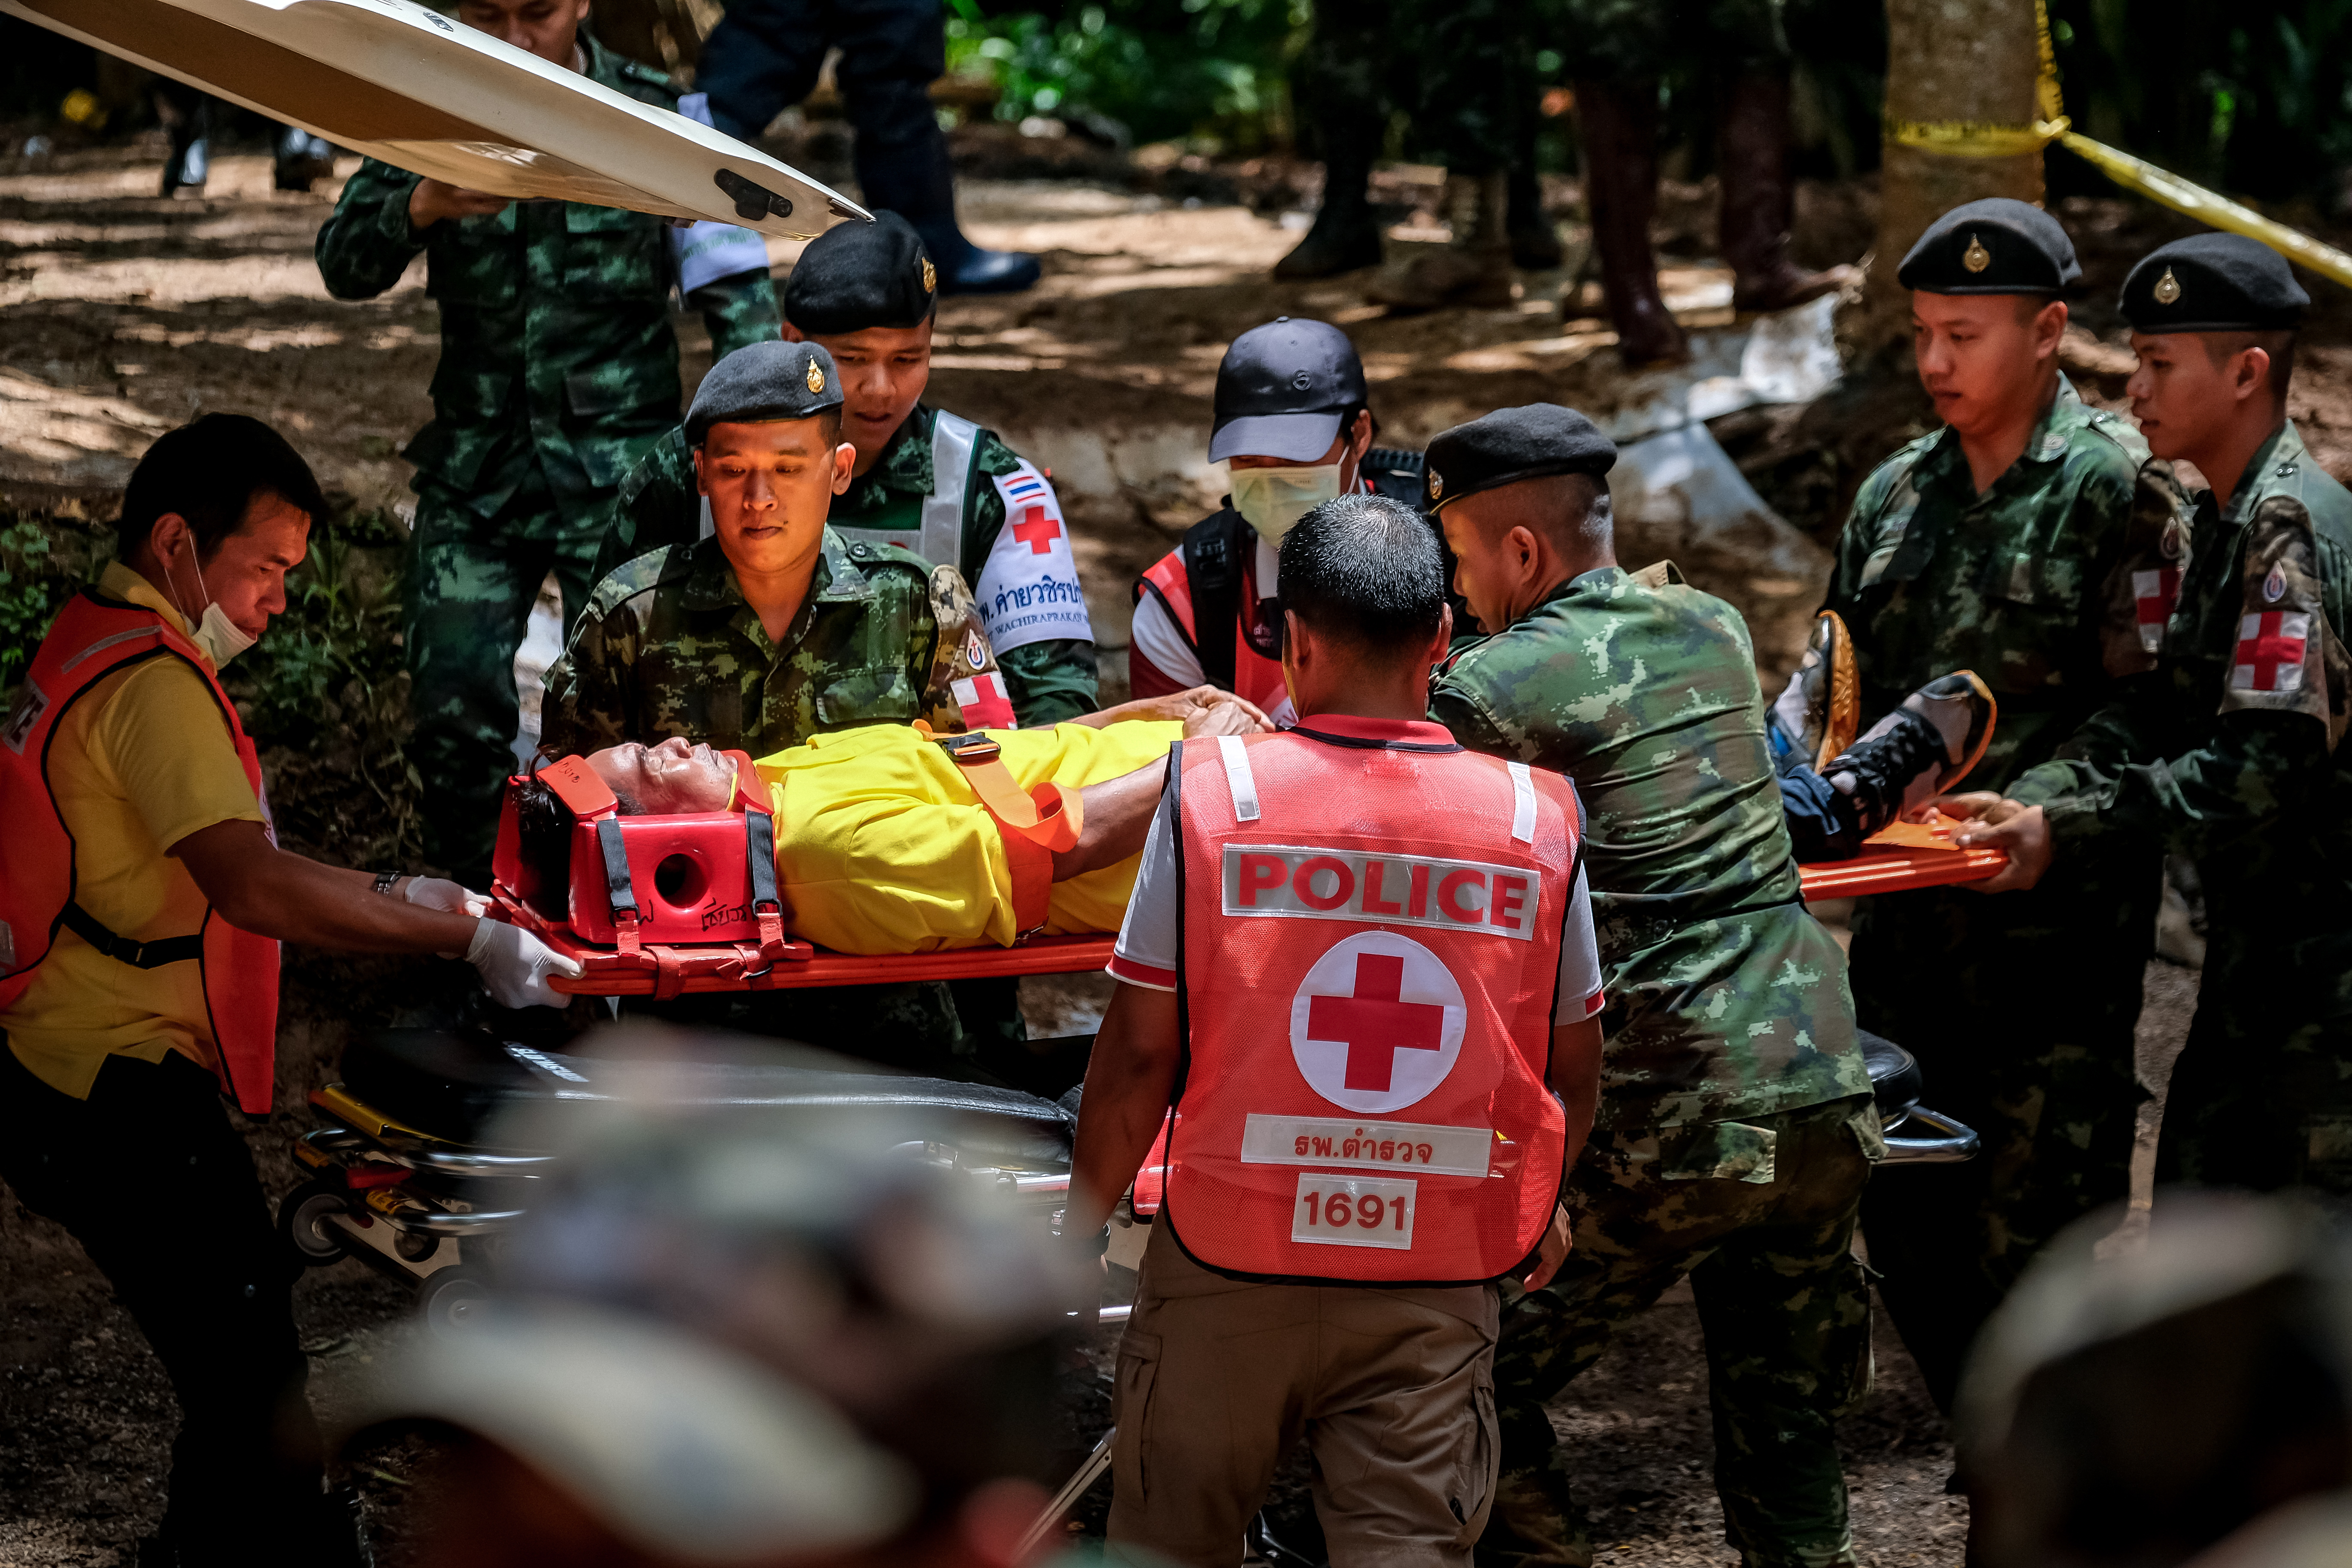 Thai rescue workers practice medical training on an entrance of Tham Luang Nang Non cave on July 04, 2018 in Chiang Rai, Thailand. (Getty Images)